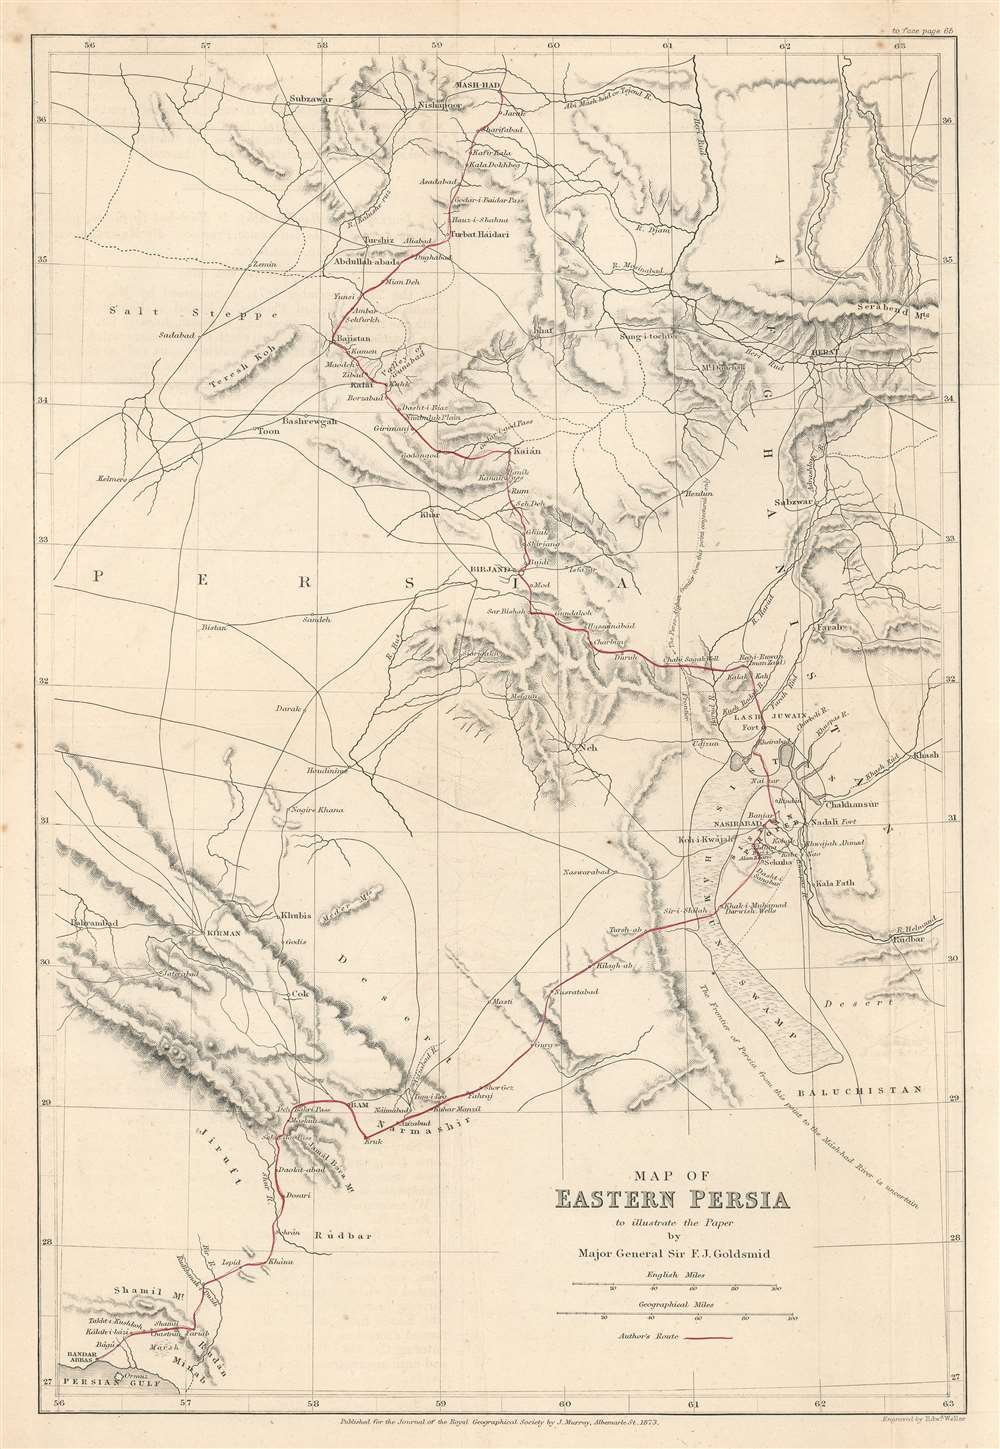 Map of Eastern Persia to illustrate the Paper by Major General Sir F. J. Goldsmid. - Main View